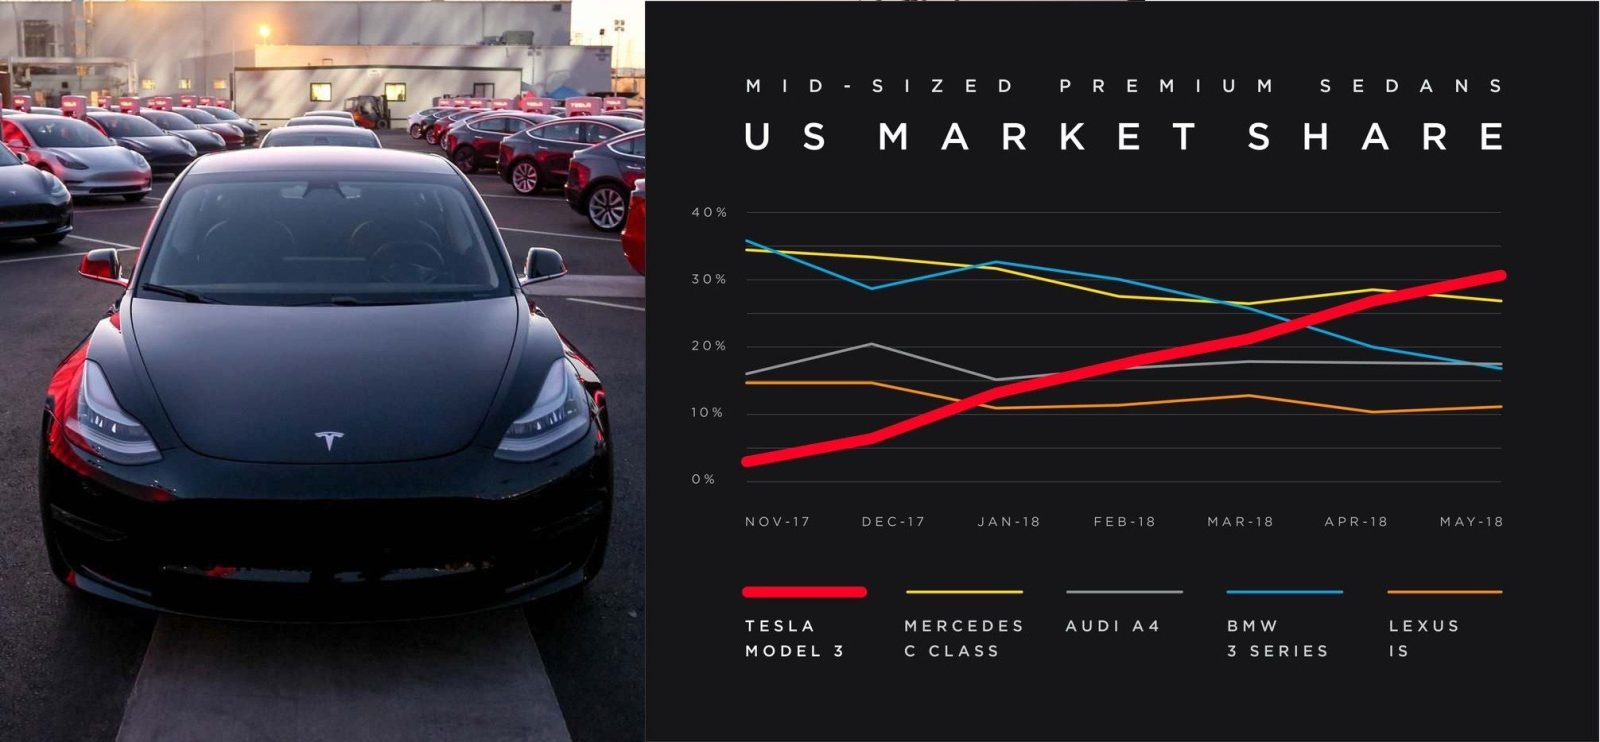 Tesla Model 3 is 'outselling all of its gas-powered equivalents combined'